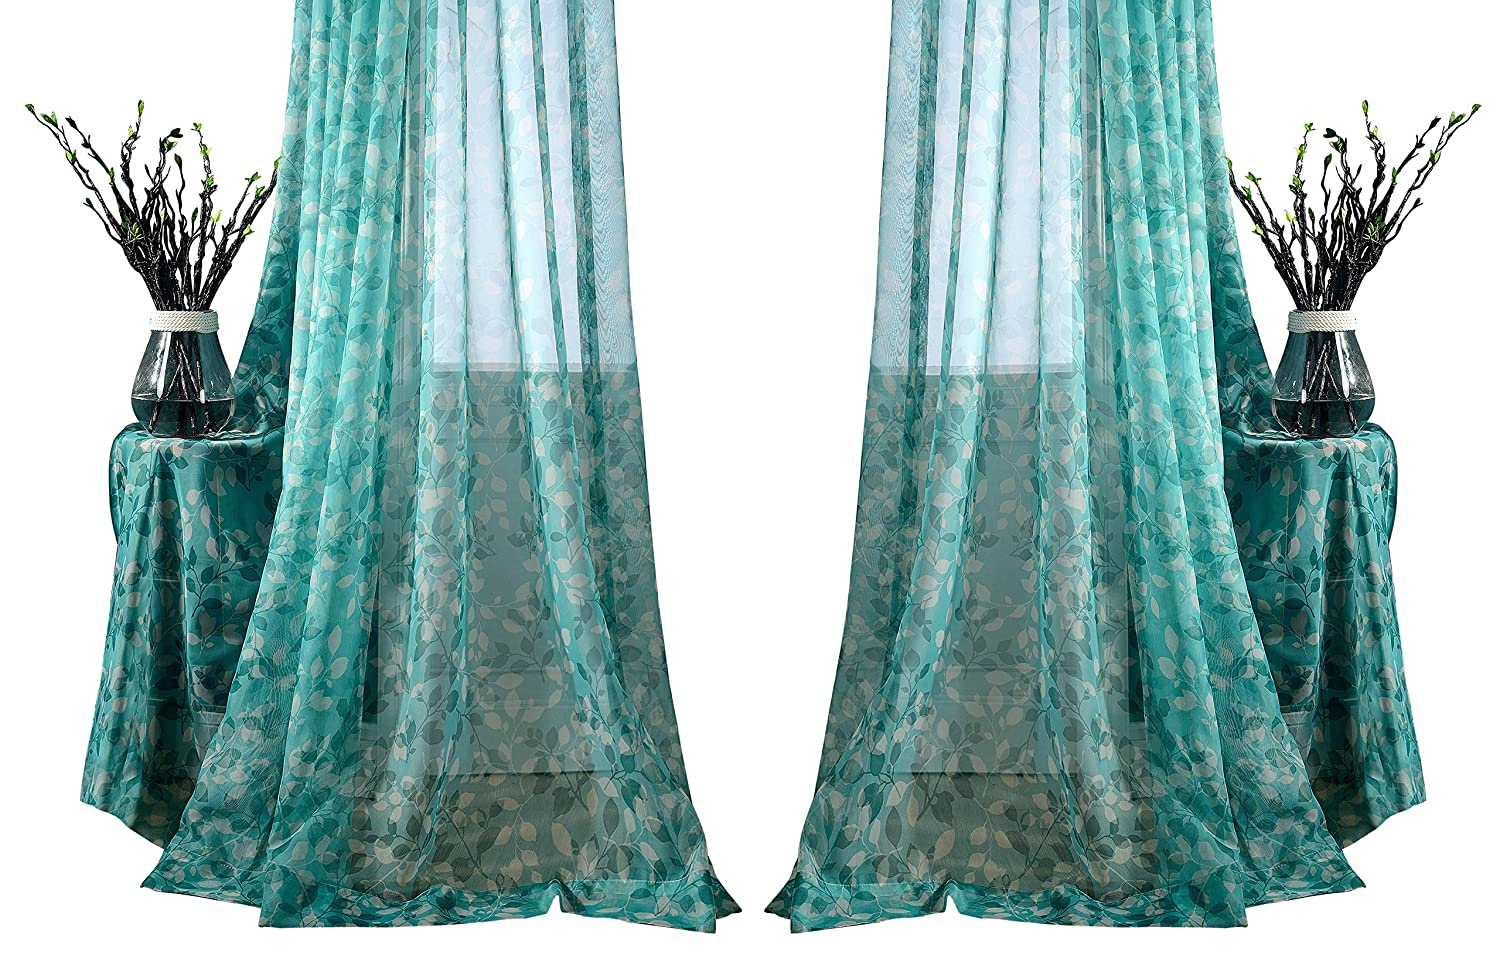 Aside Bside Fashion Style Flowers Printed Sheer Curtains Draperies Rod Pocket Breathable Voile Elegant Home Treatment Living Room Dining Room Kids Room (1 Panel, W 50 x L 63 inch, Teal)